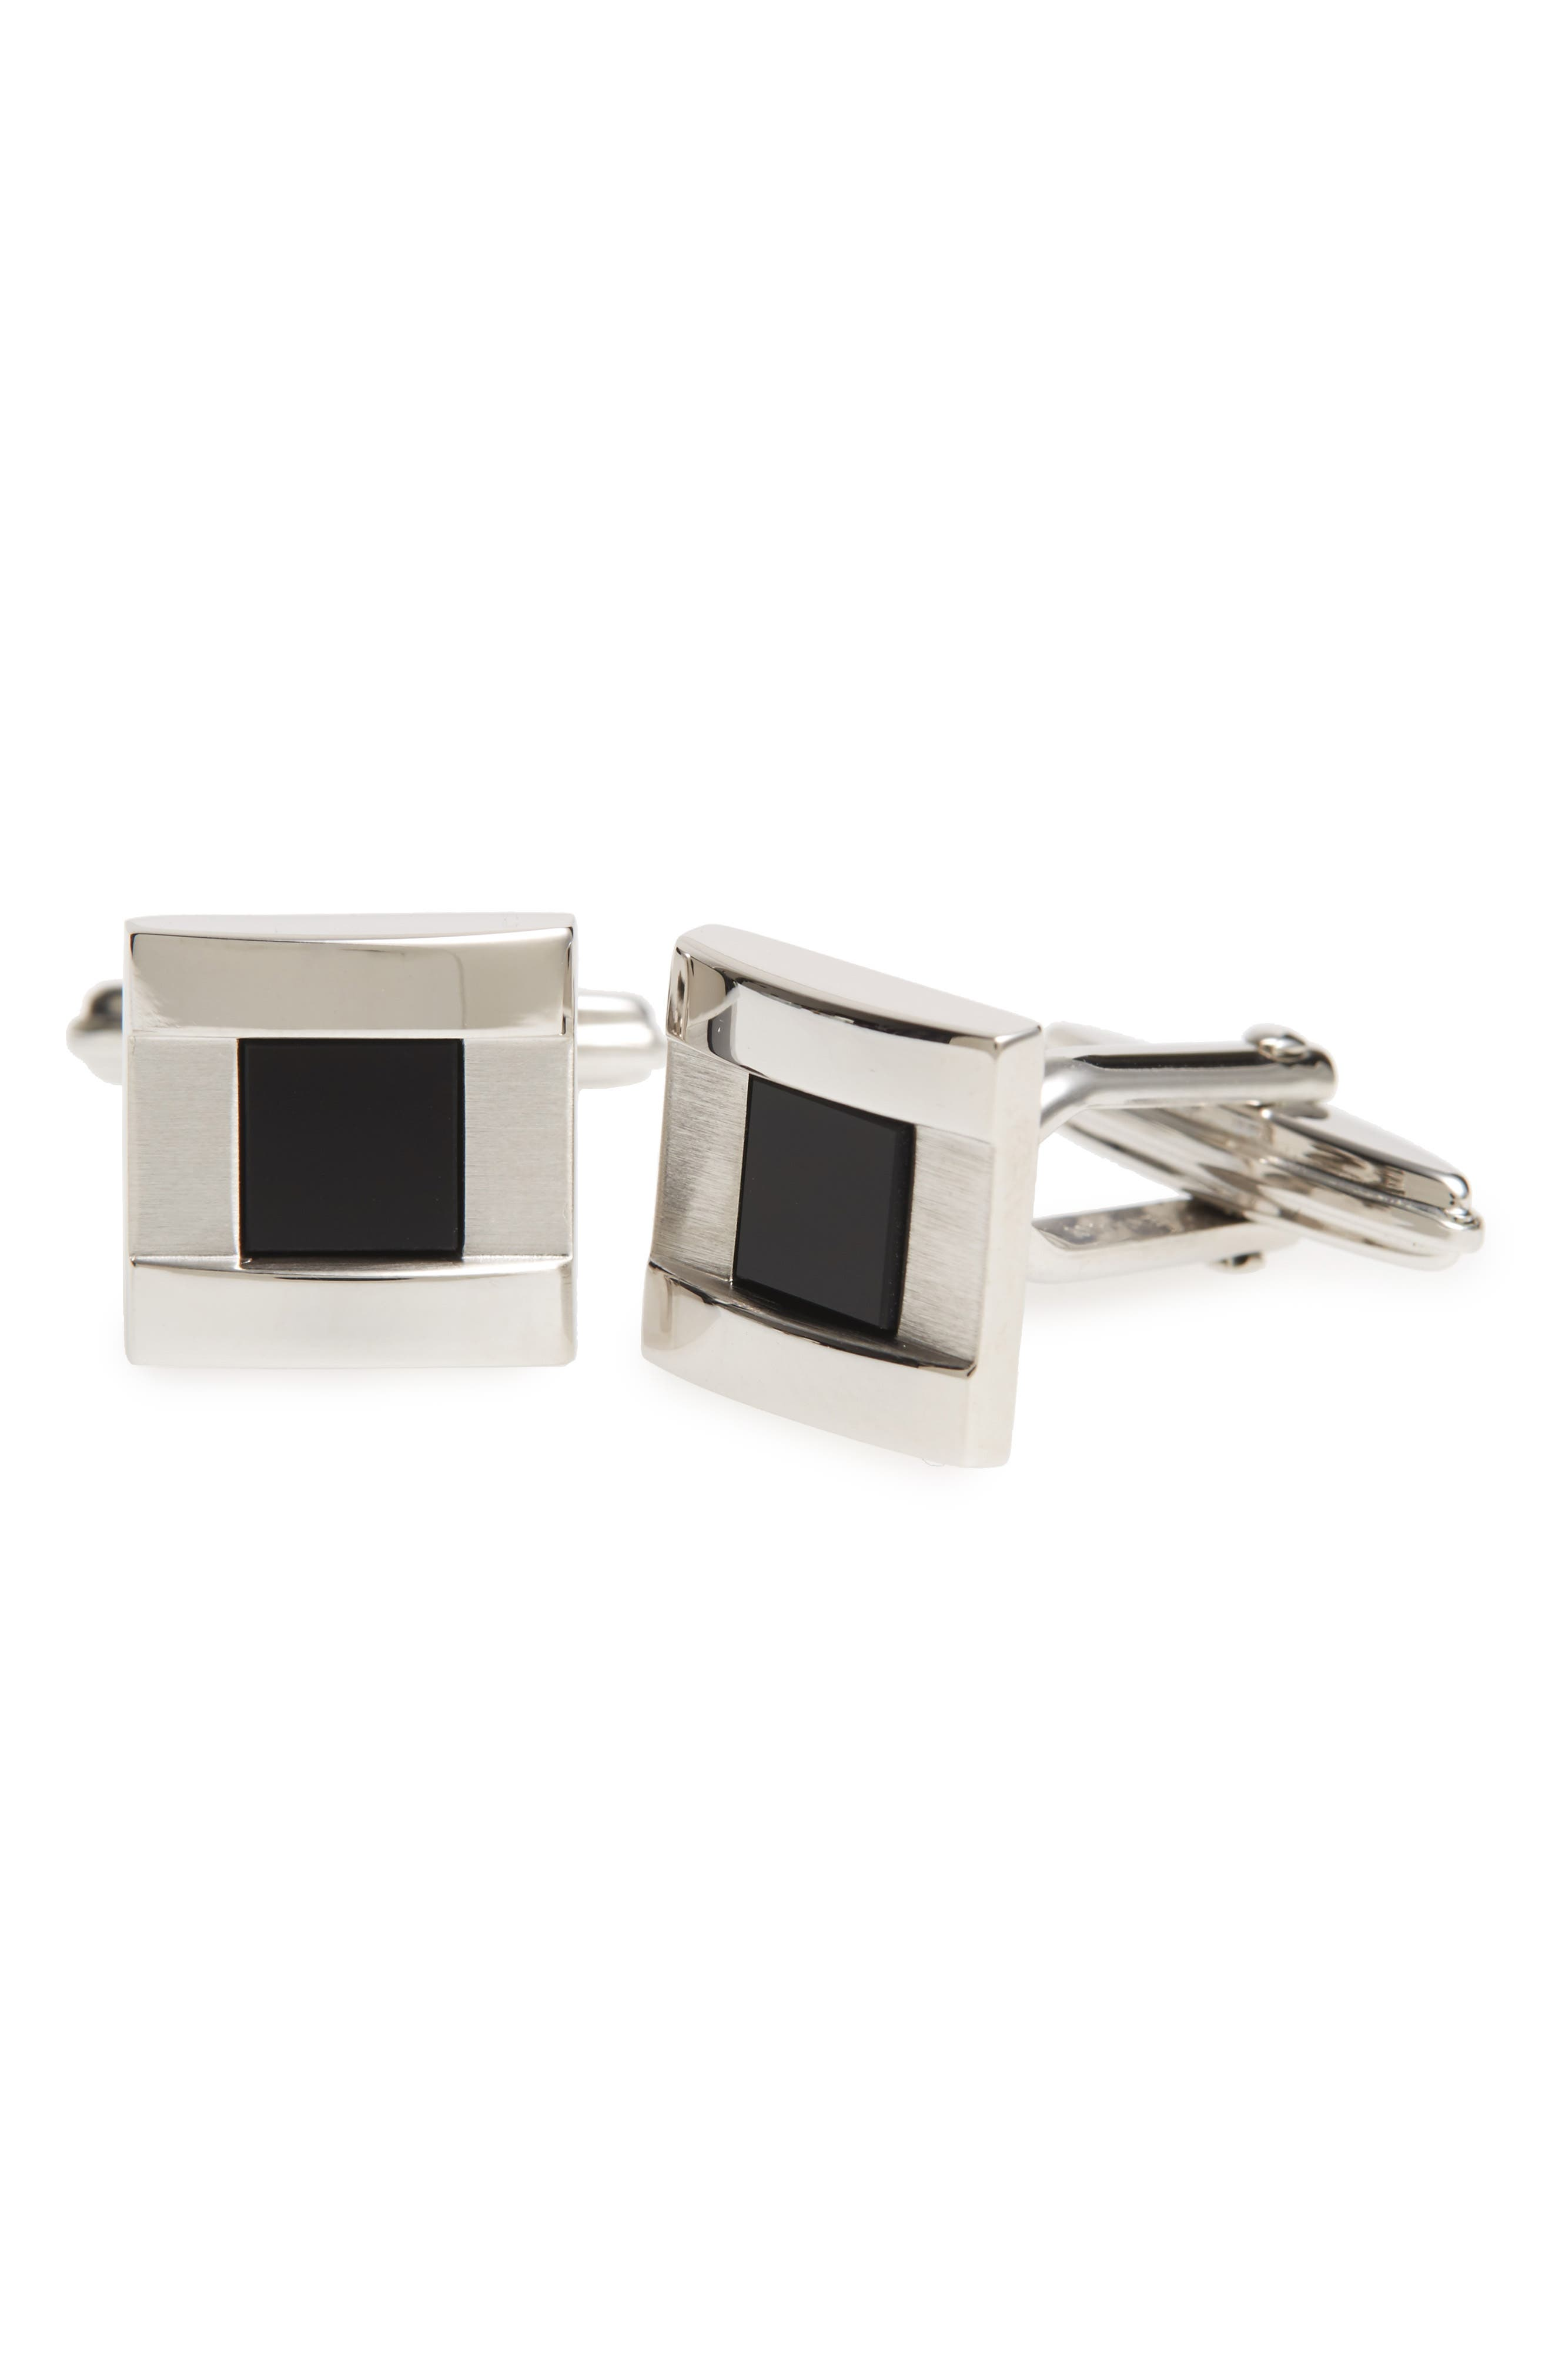 Lanvin Square Cuff Links